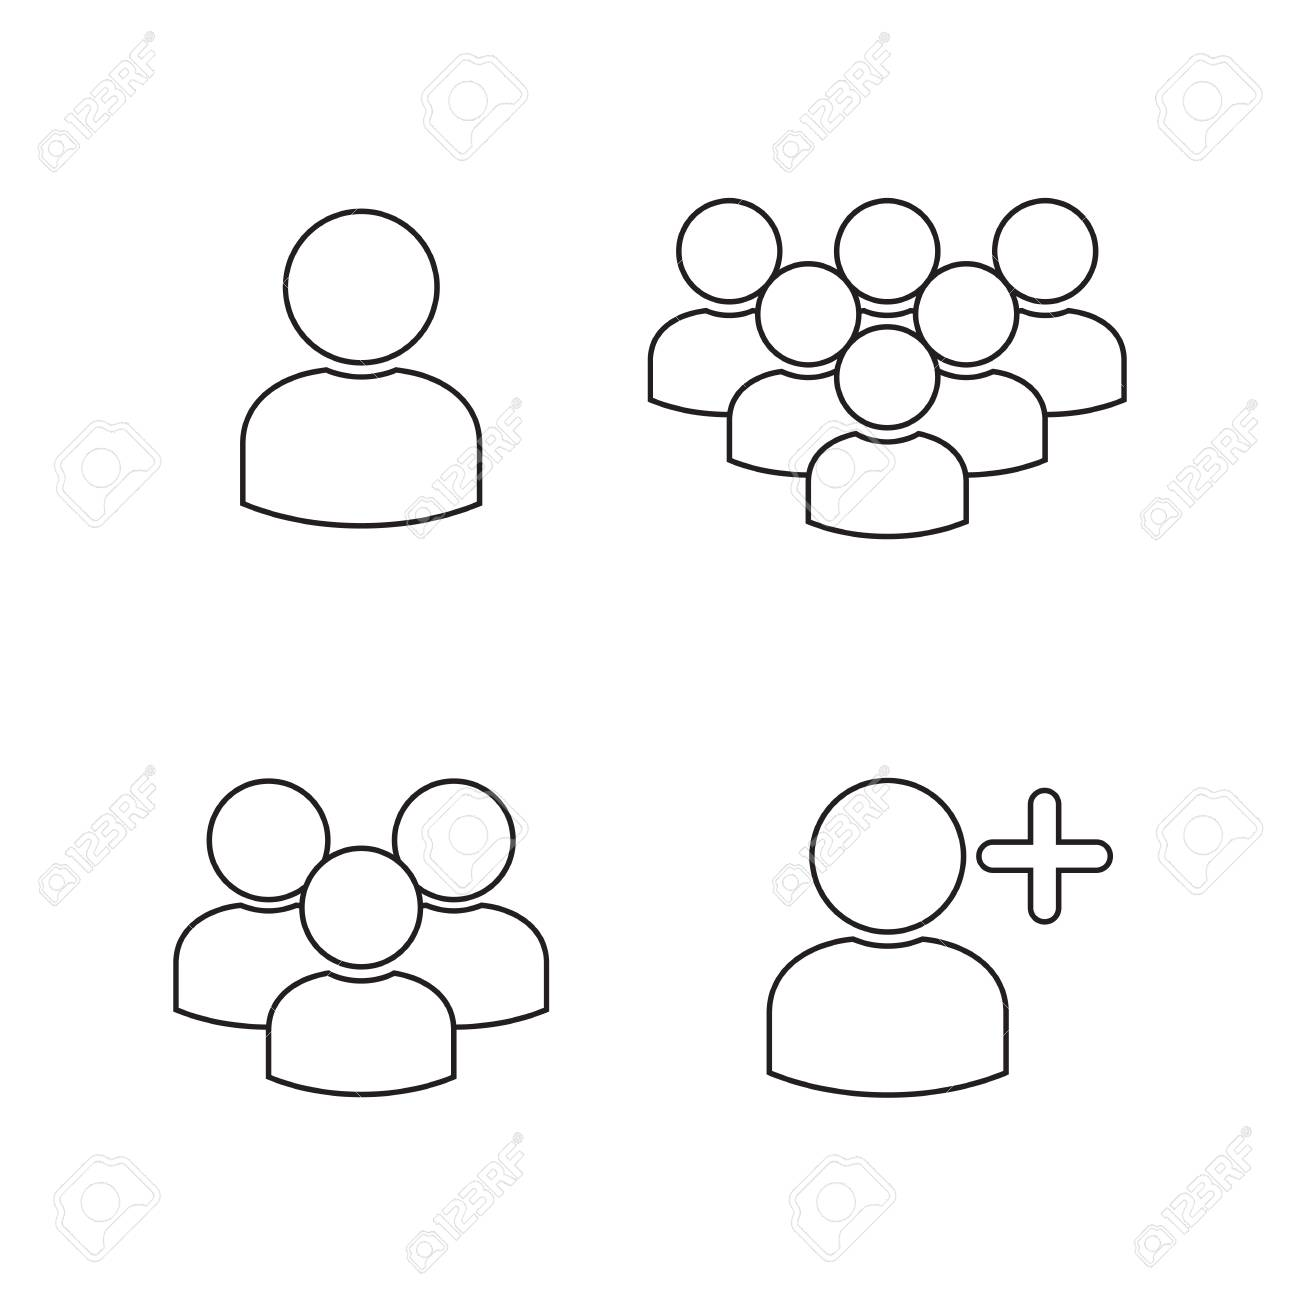 User Profile Group Icons Symbols Black On A White Background Royalty